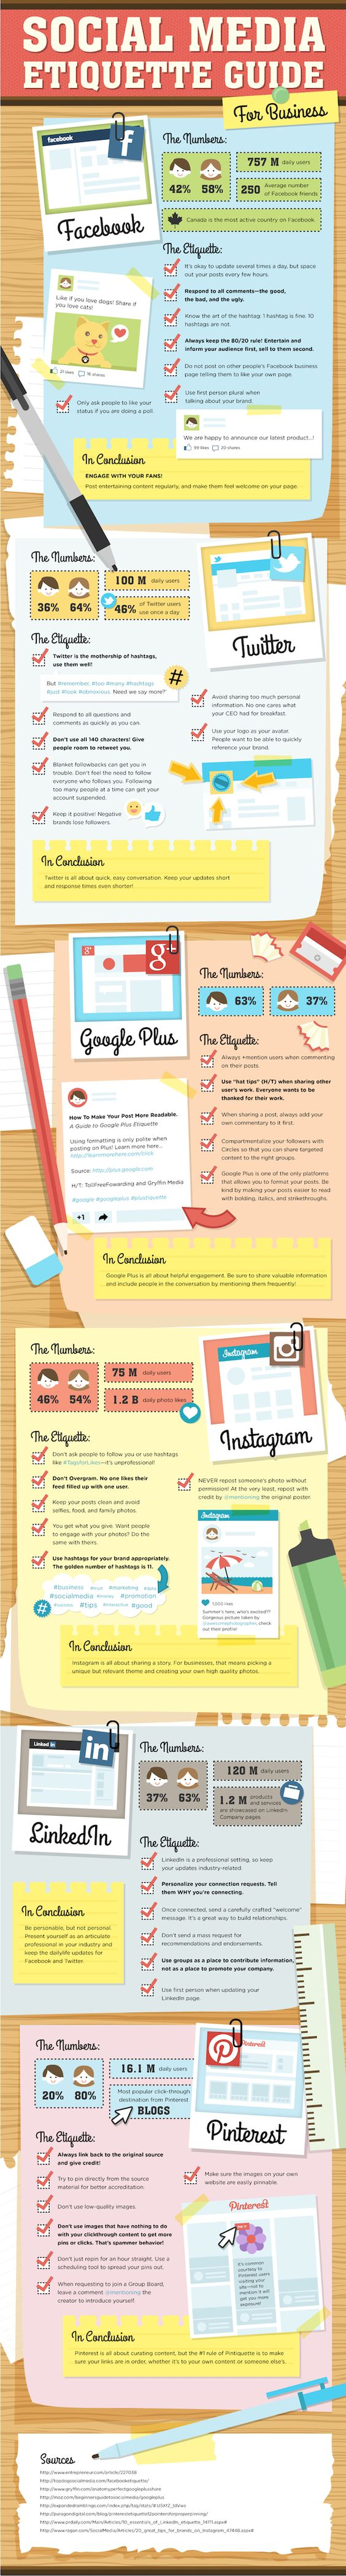 """SOCIAL MEDIA - """"A Social Media Etiquette Guide You Might Find Useful"""". For Business.  Via http://www.OnlineBusinessTransformation.com/?refid=1007"""